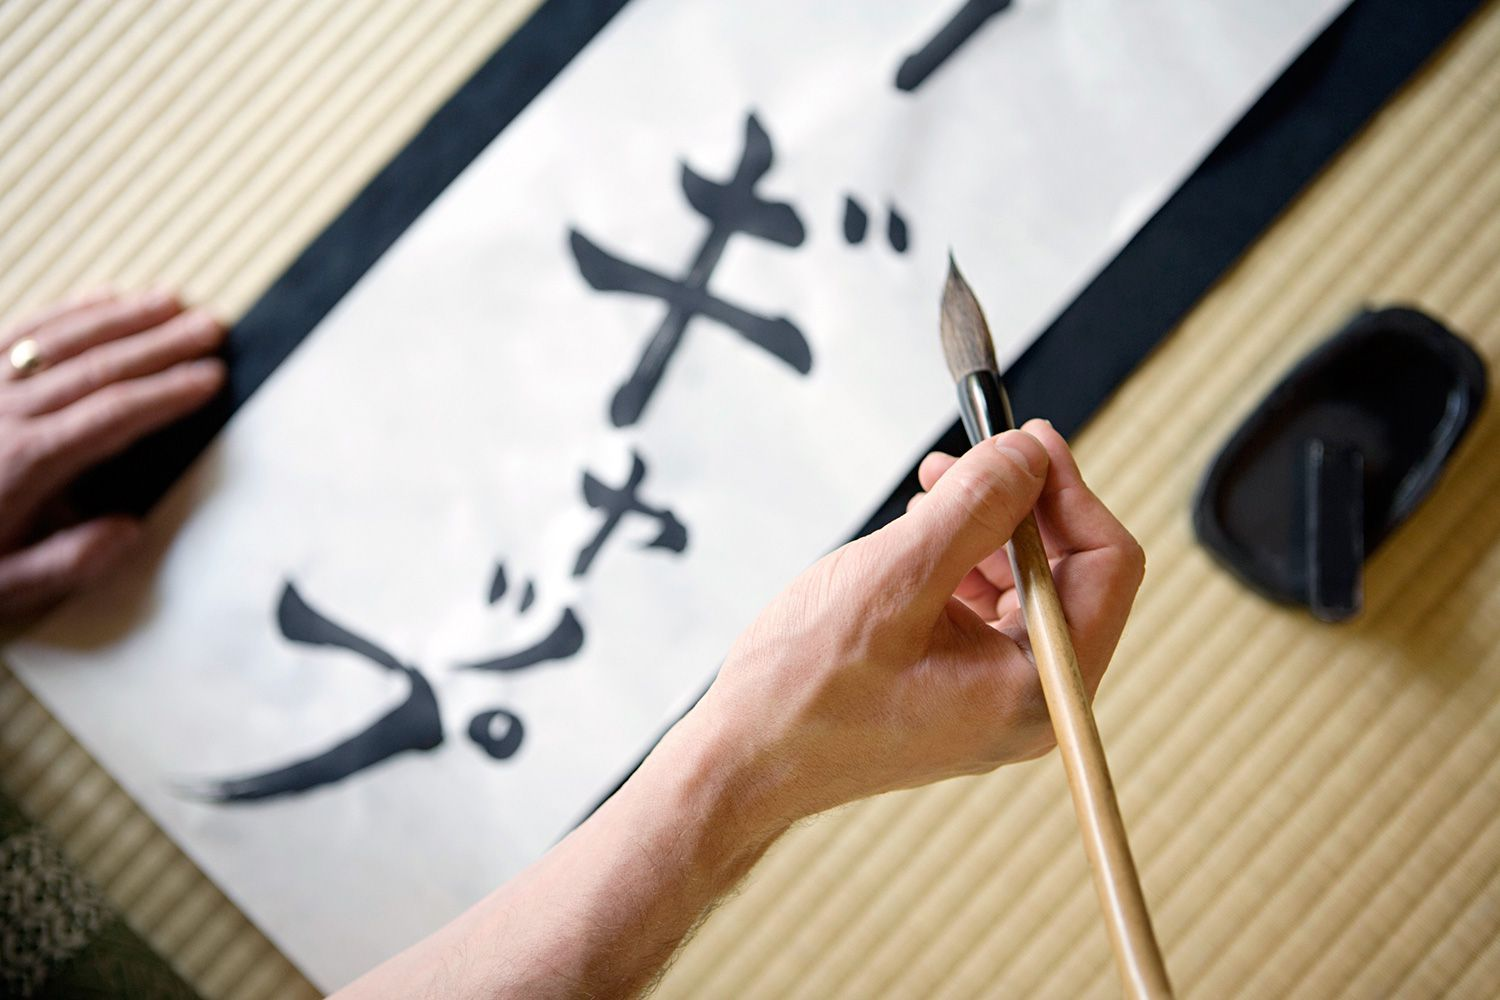 japanese writing language Later, the educated japanese used it to write the chinese language the earliest known examples of japanese writing, dating back to the 5 th and 6 th centuries ad, are proper names inscribed with chinese characters on a mirror and a sword.